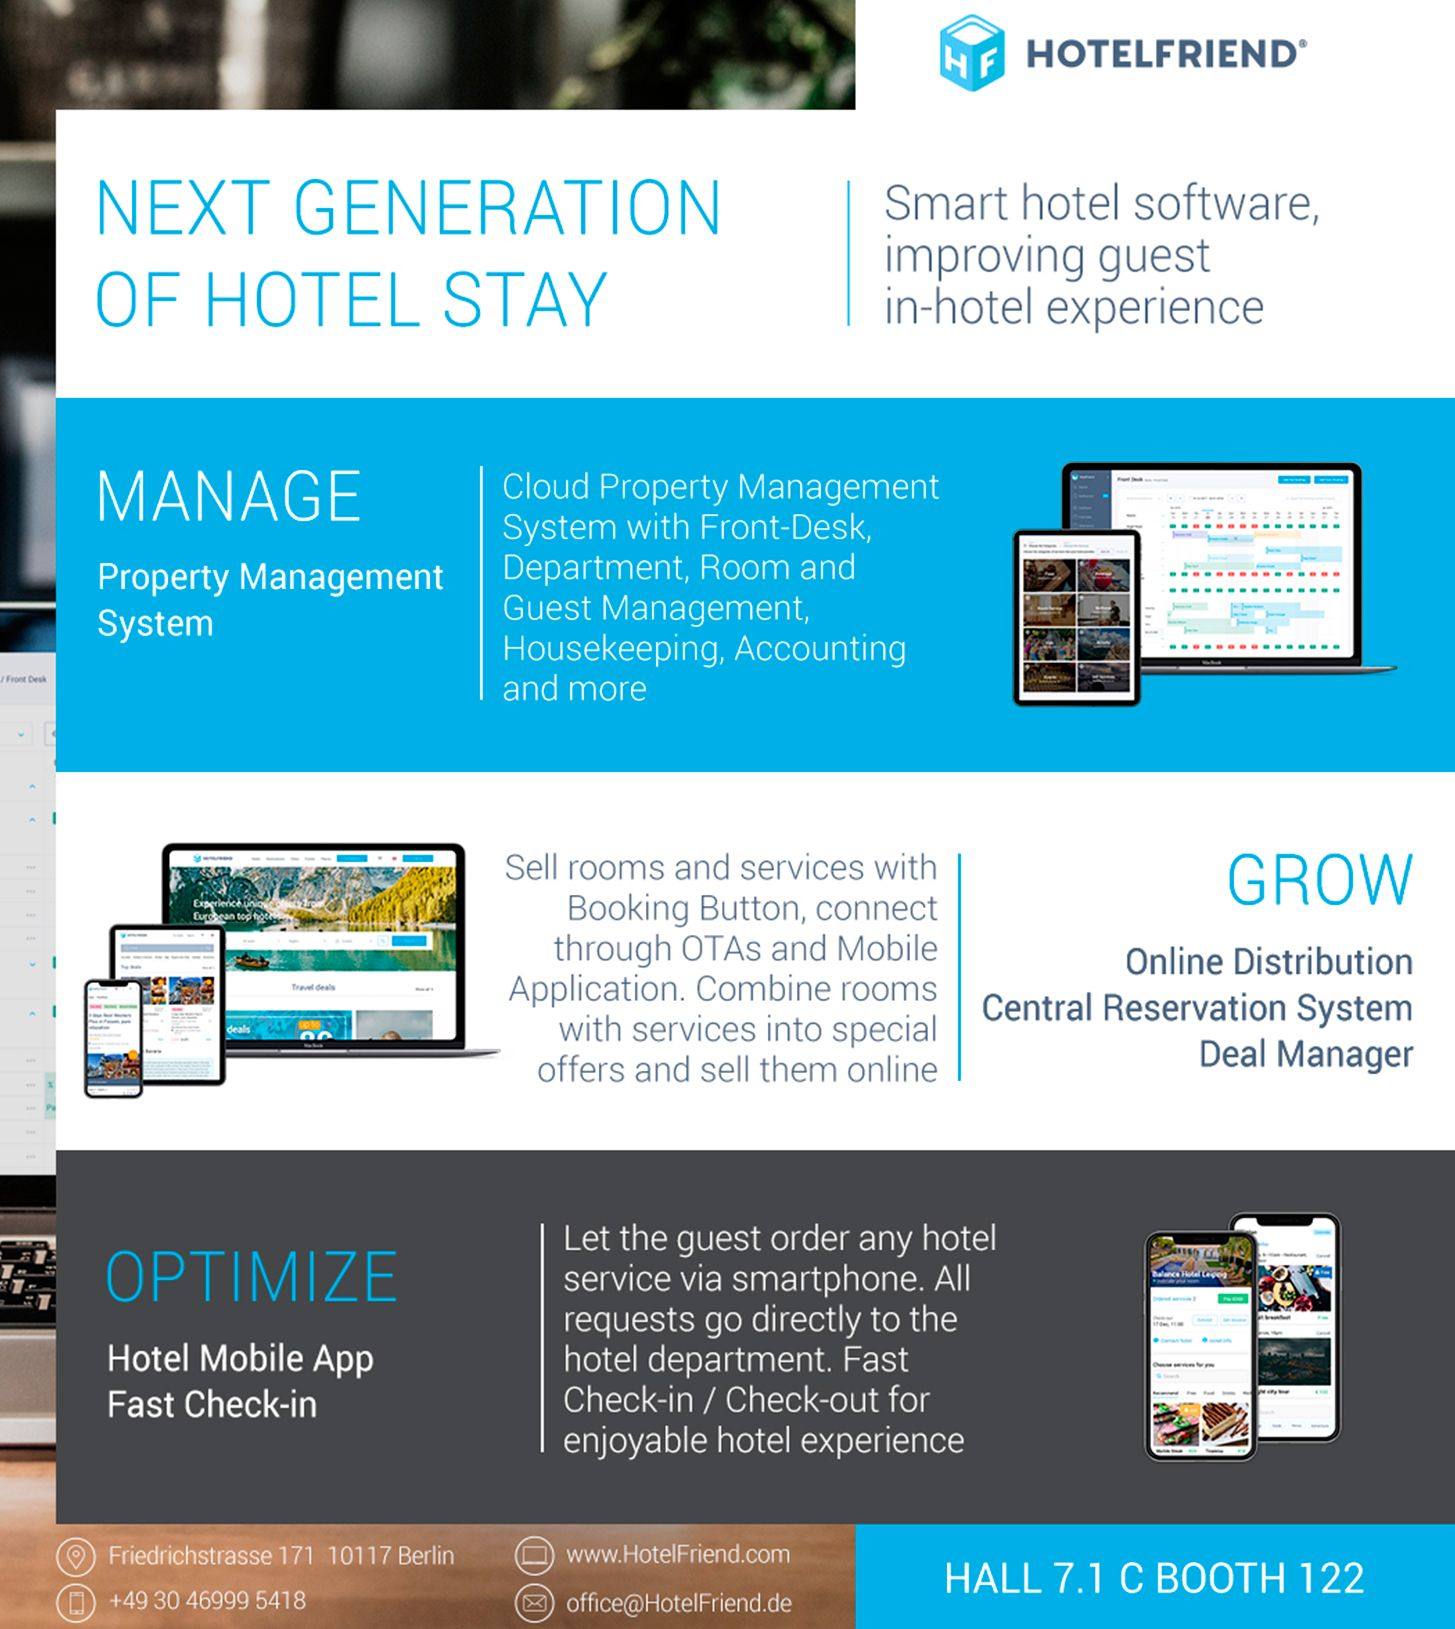 HotelFriend - next generation of hotel stay